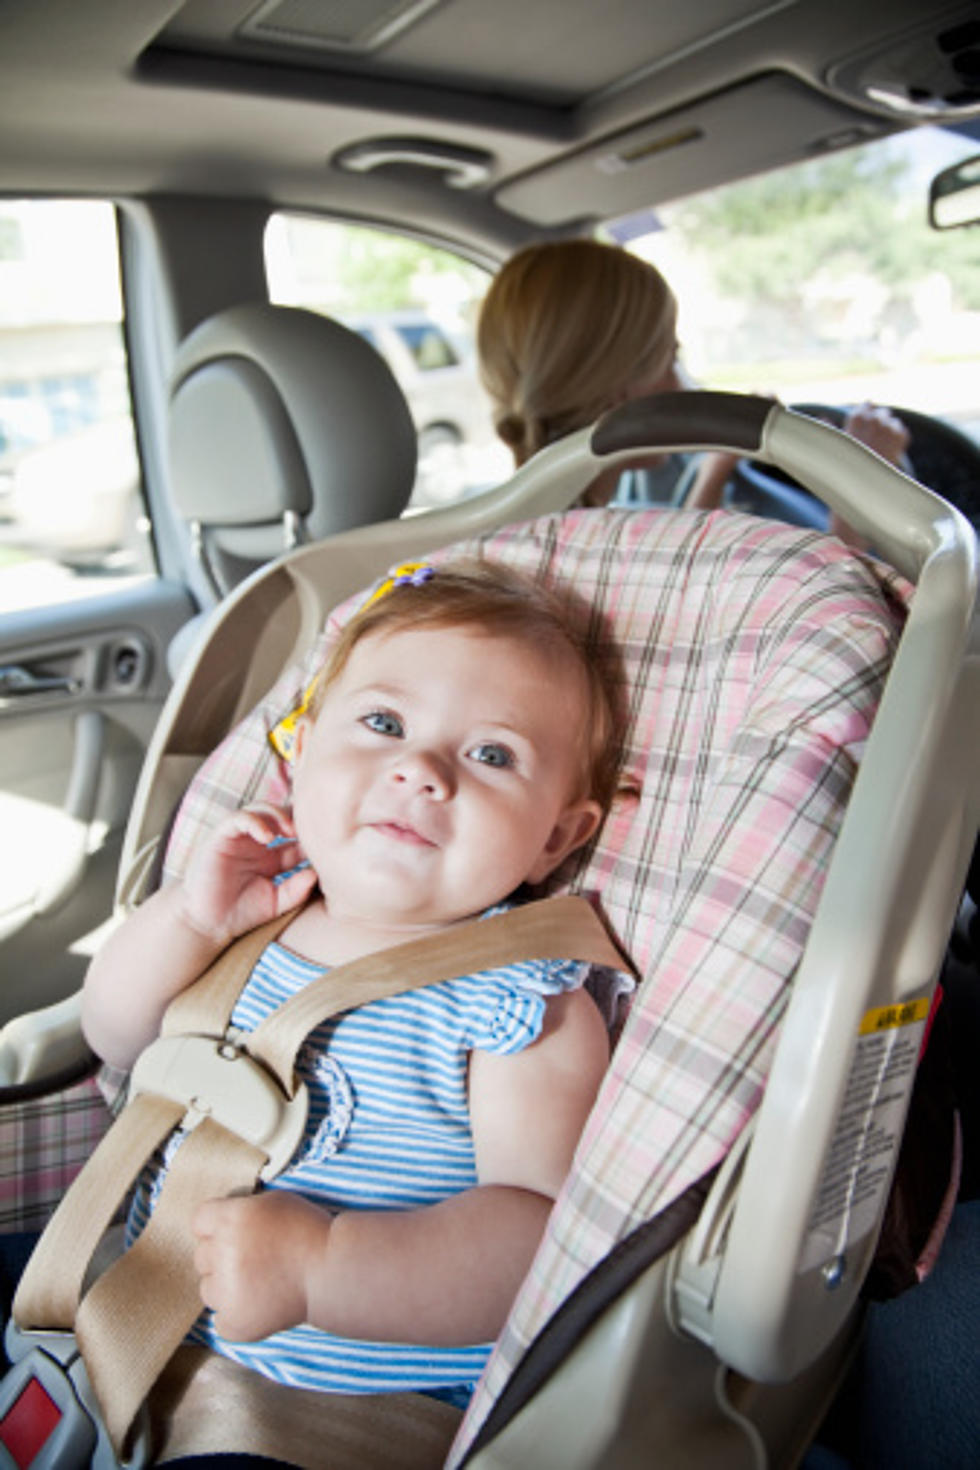 New Illinois Law Kids In Rear Facing Seats Until Age 2